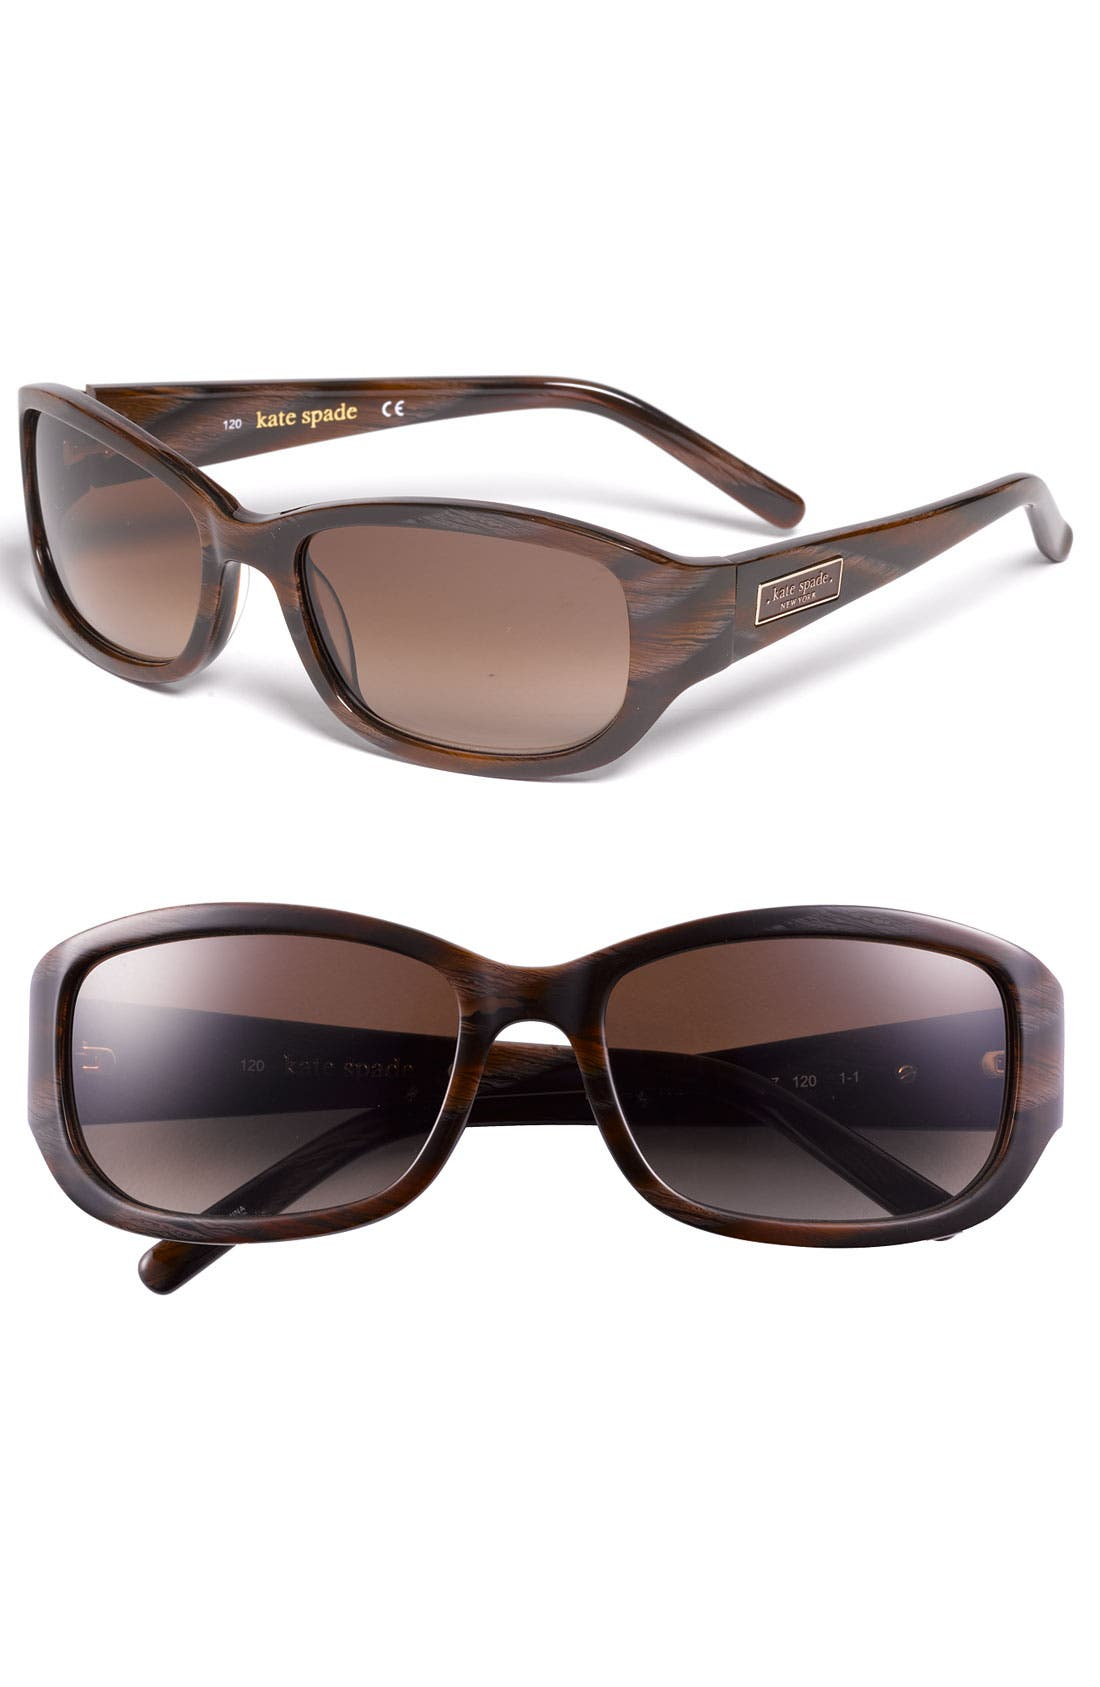 Main Image - kate spade new york 'diana' 54mm sunglasses